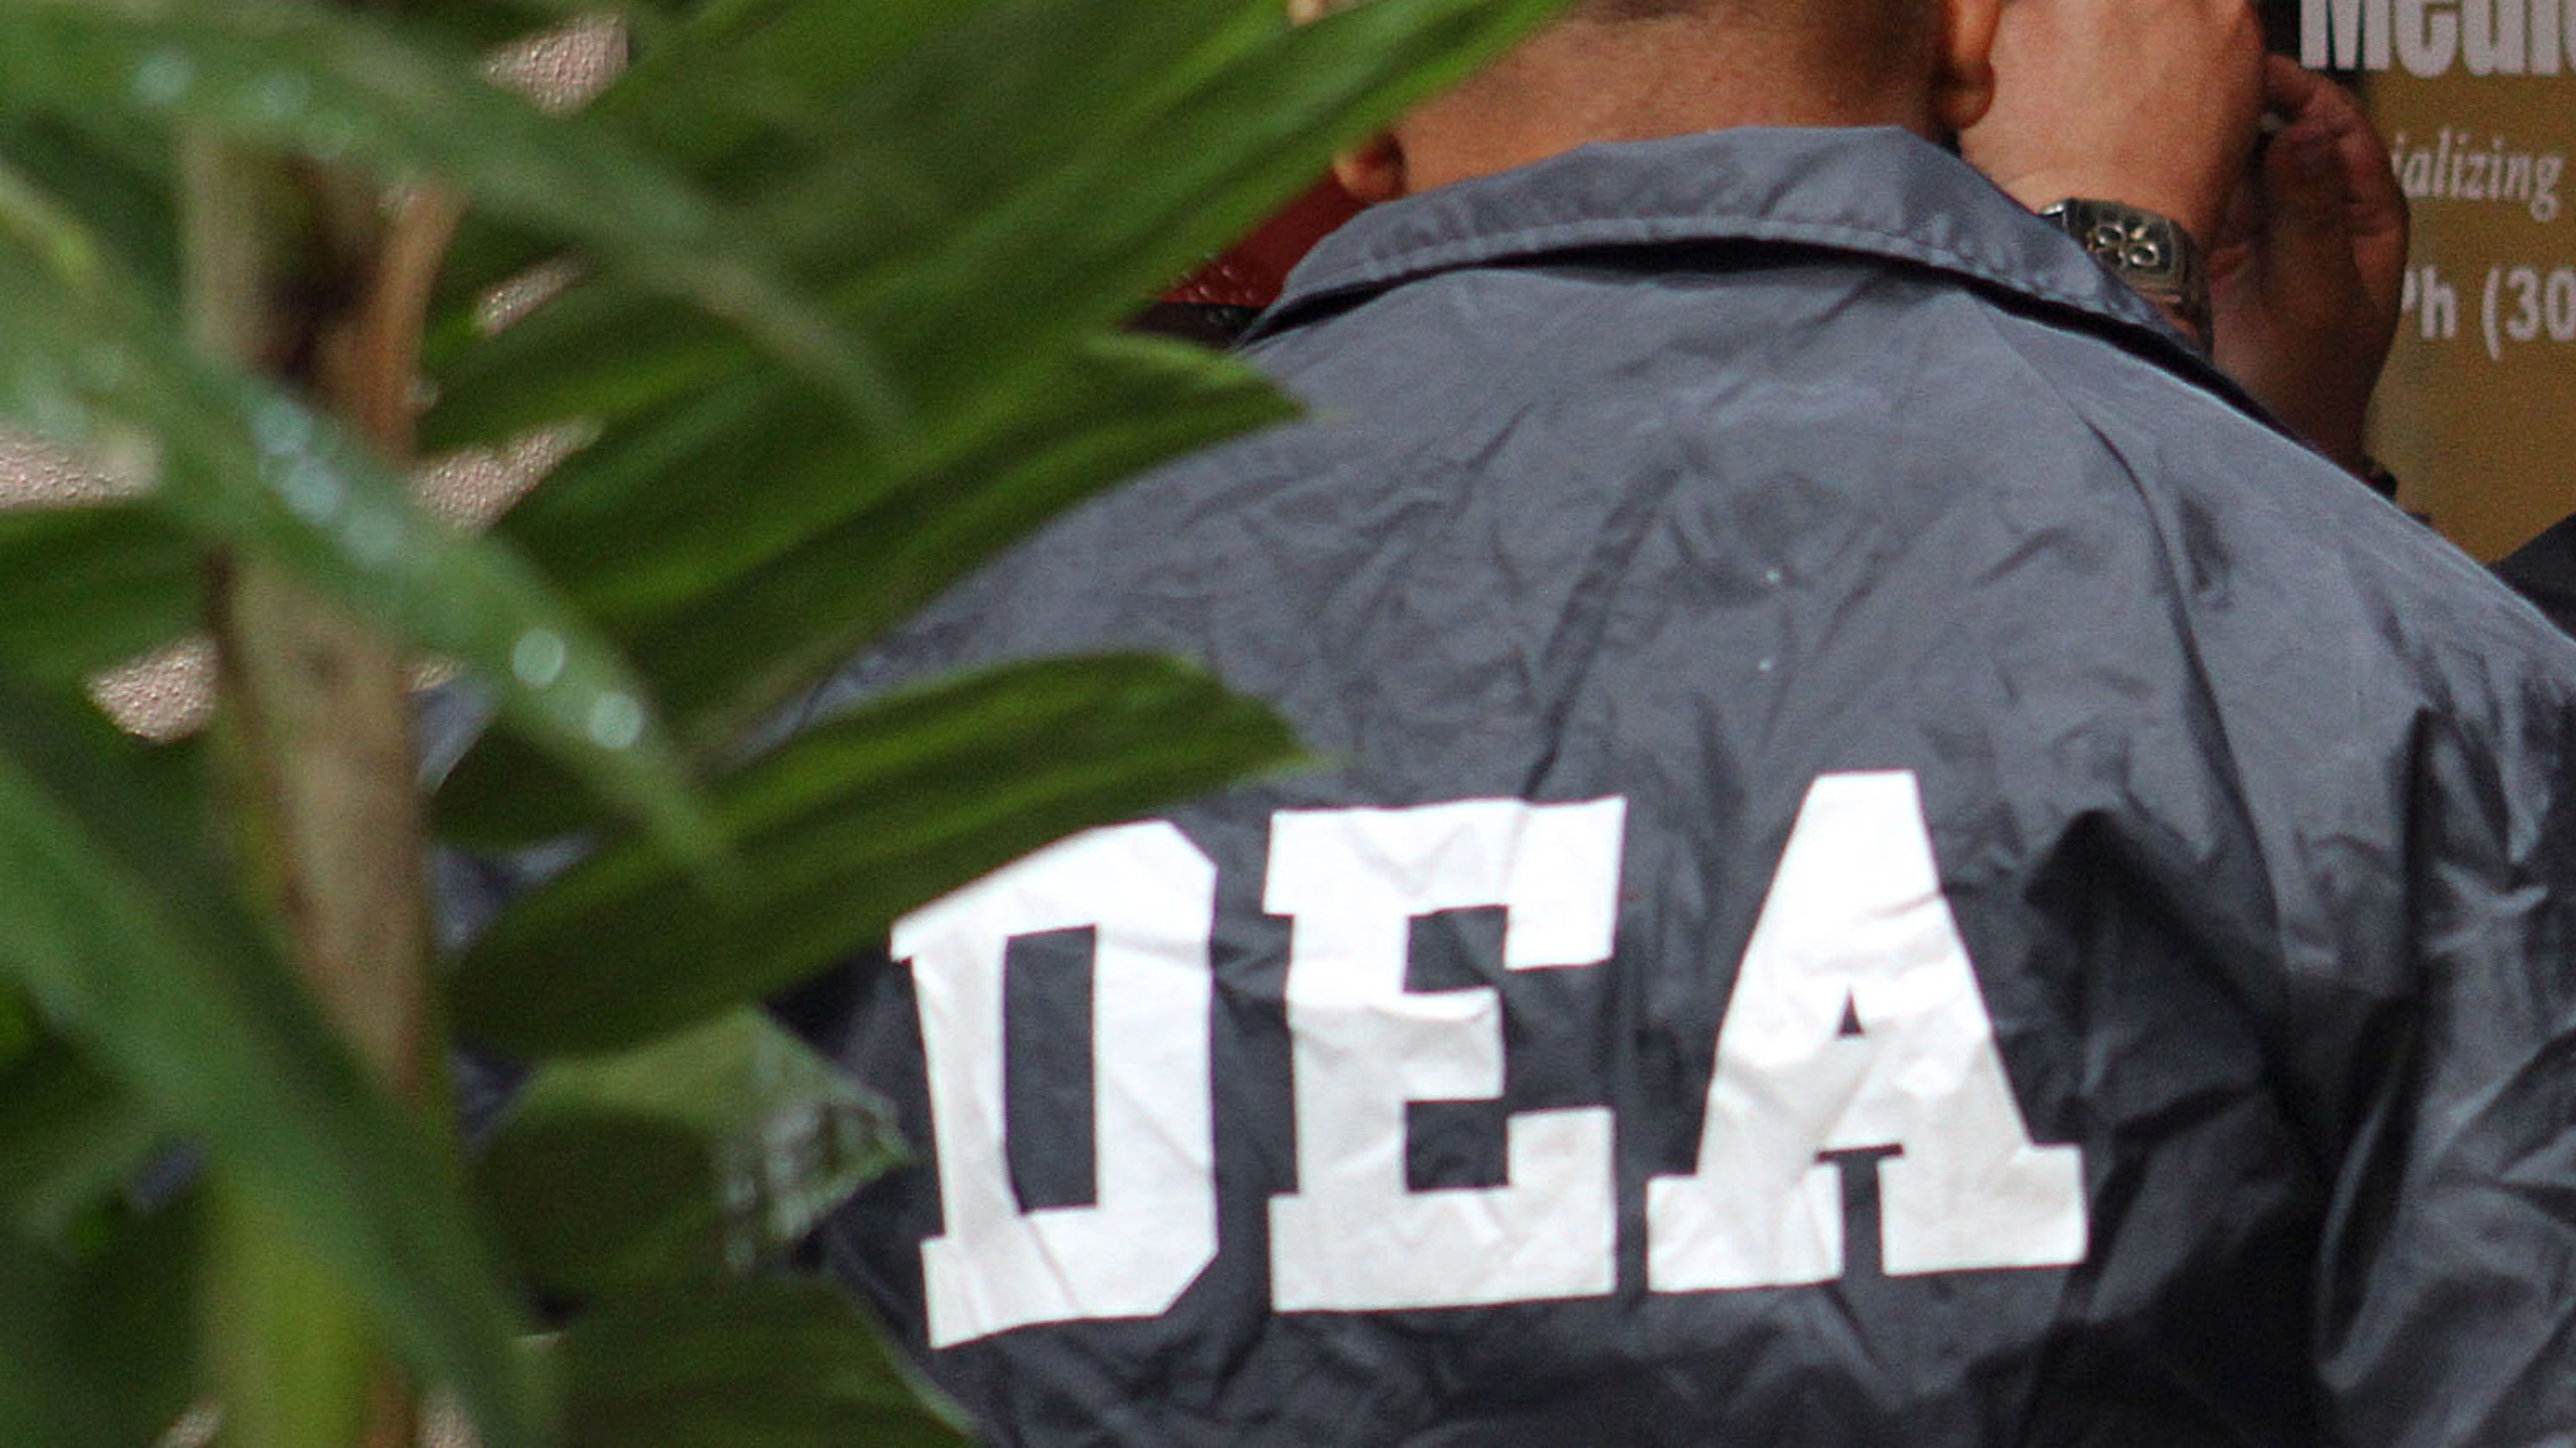 DEA had the full opioid data, not the pharmaceutical wholesale distributors